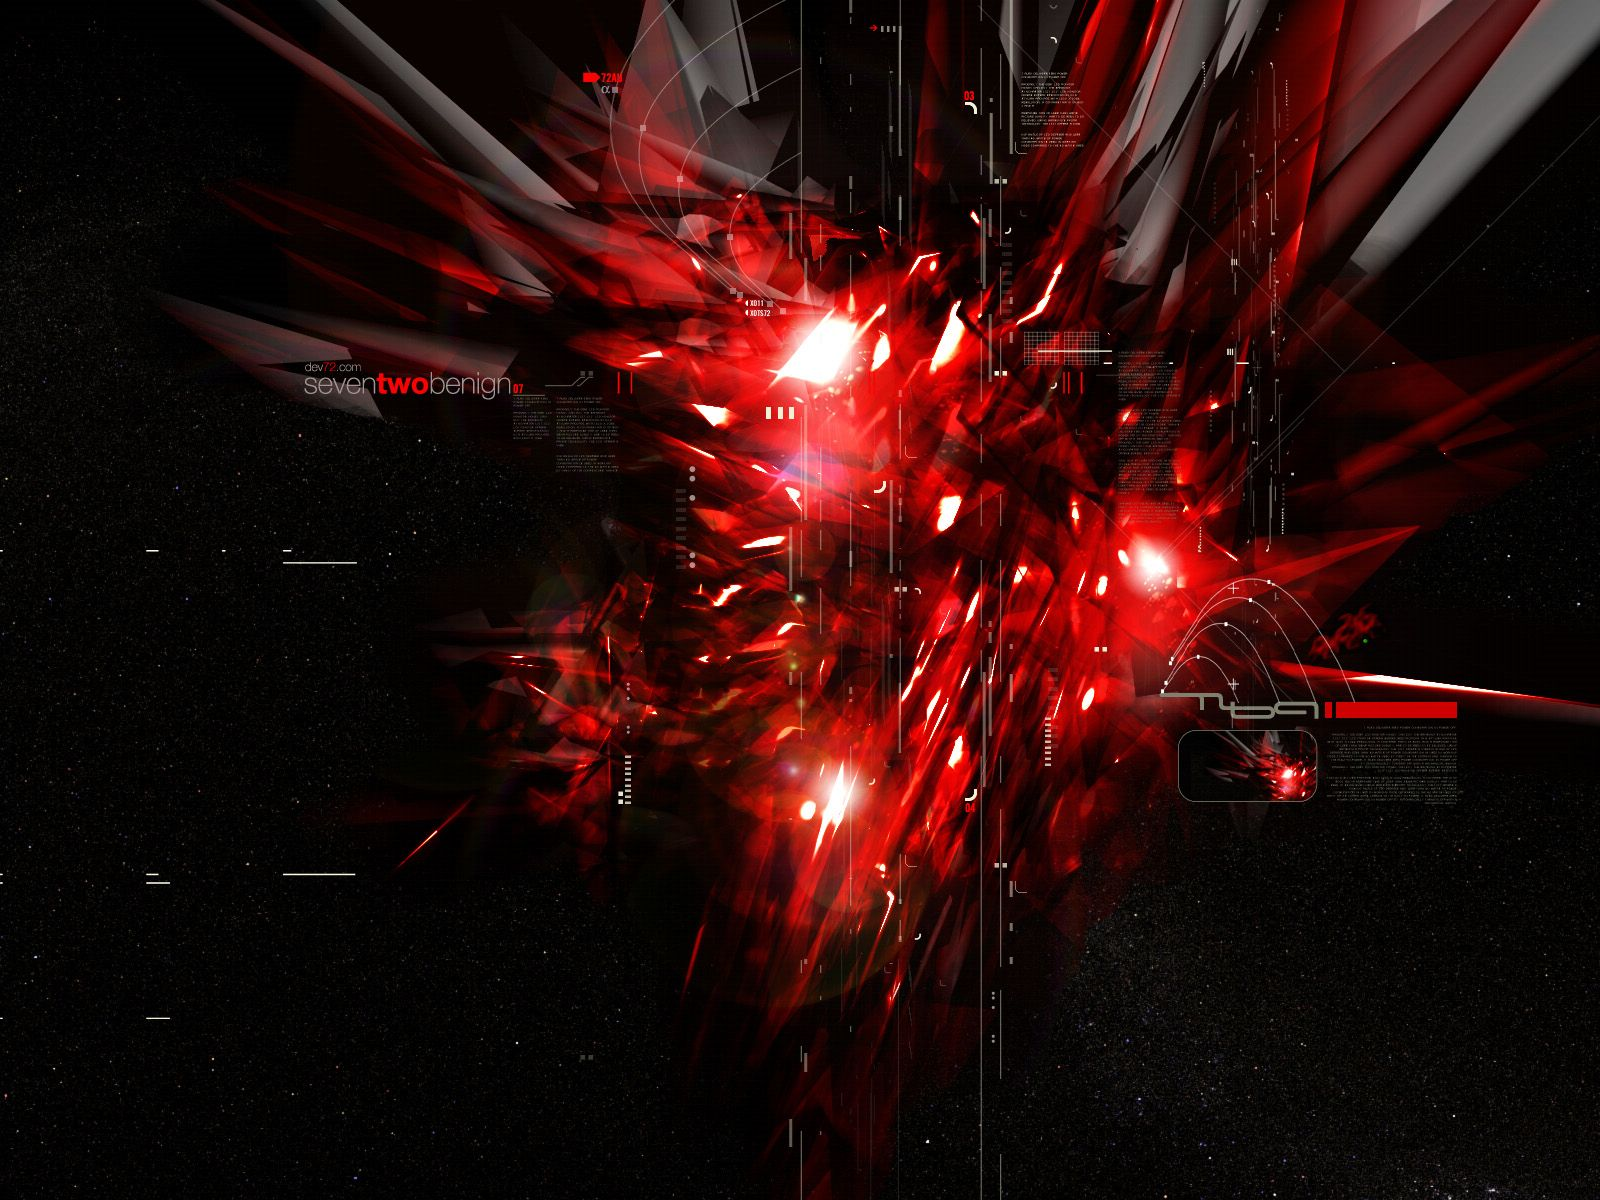 Amazing red and black abstract full hd wallpapers fan 3d amazing red and black abstract full hd wallpapers fan voltagebd Image collections